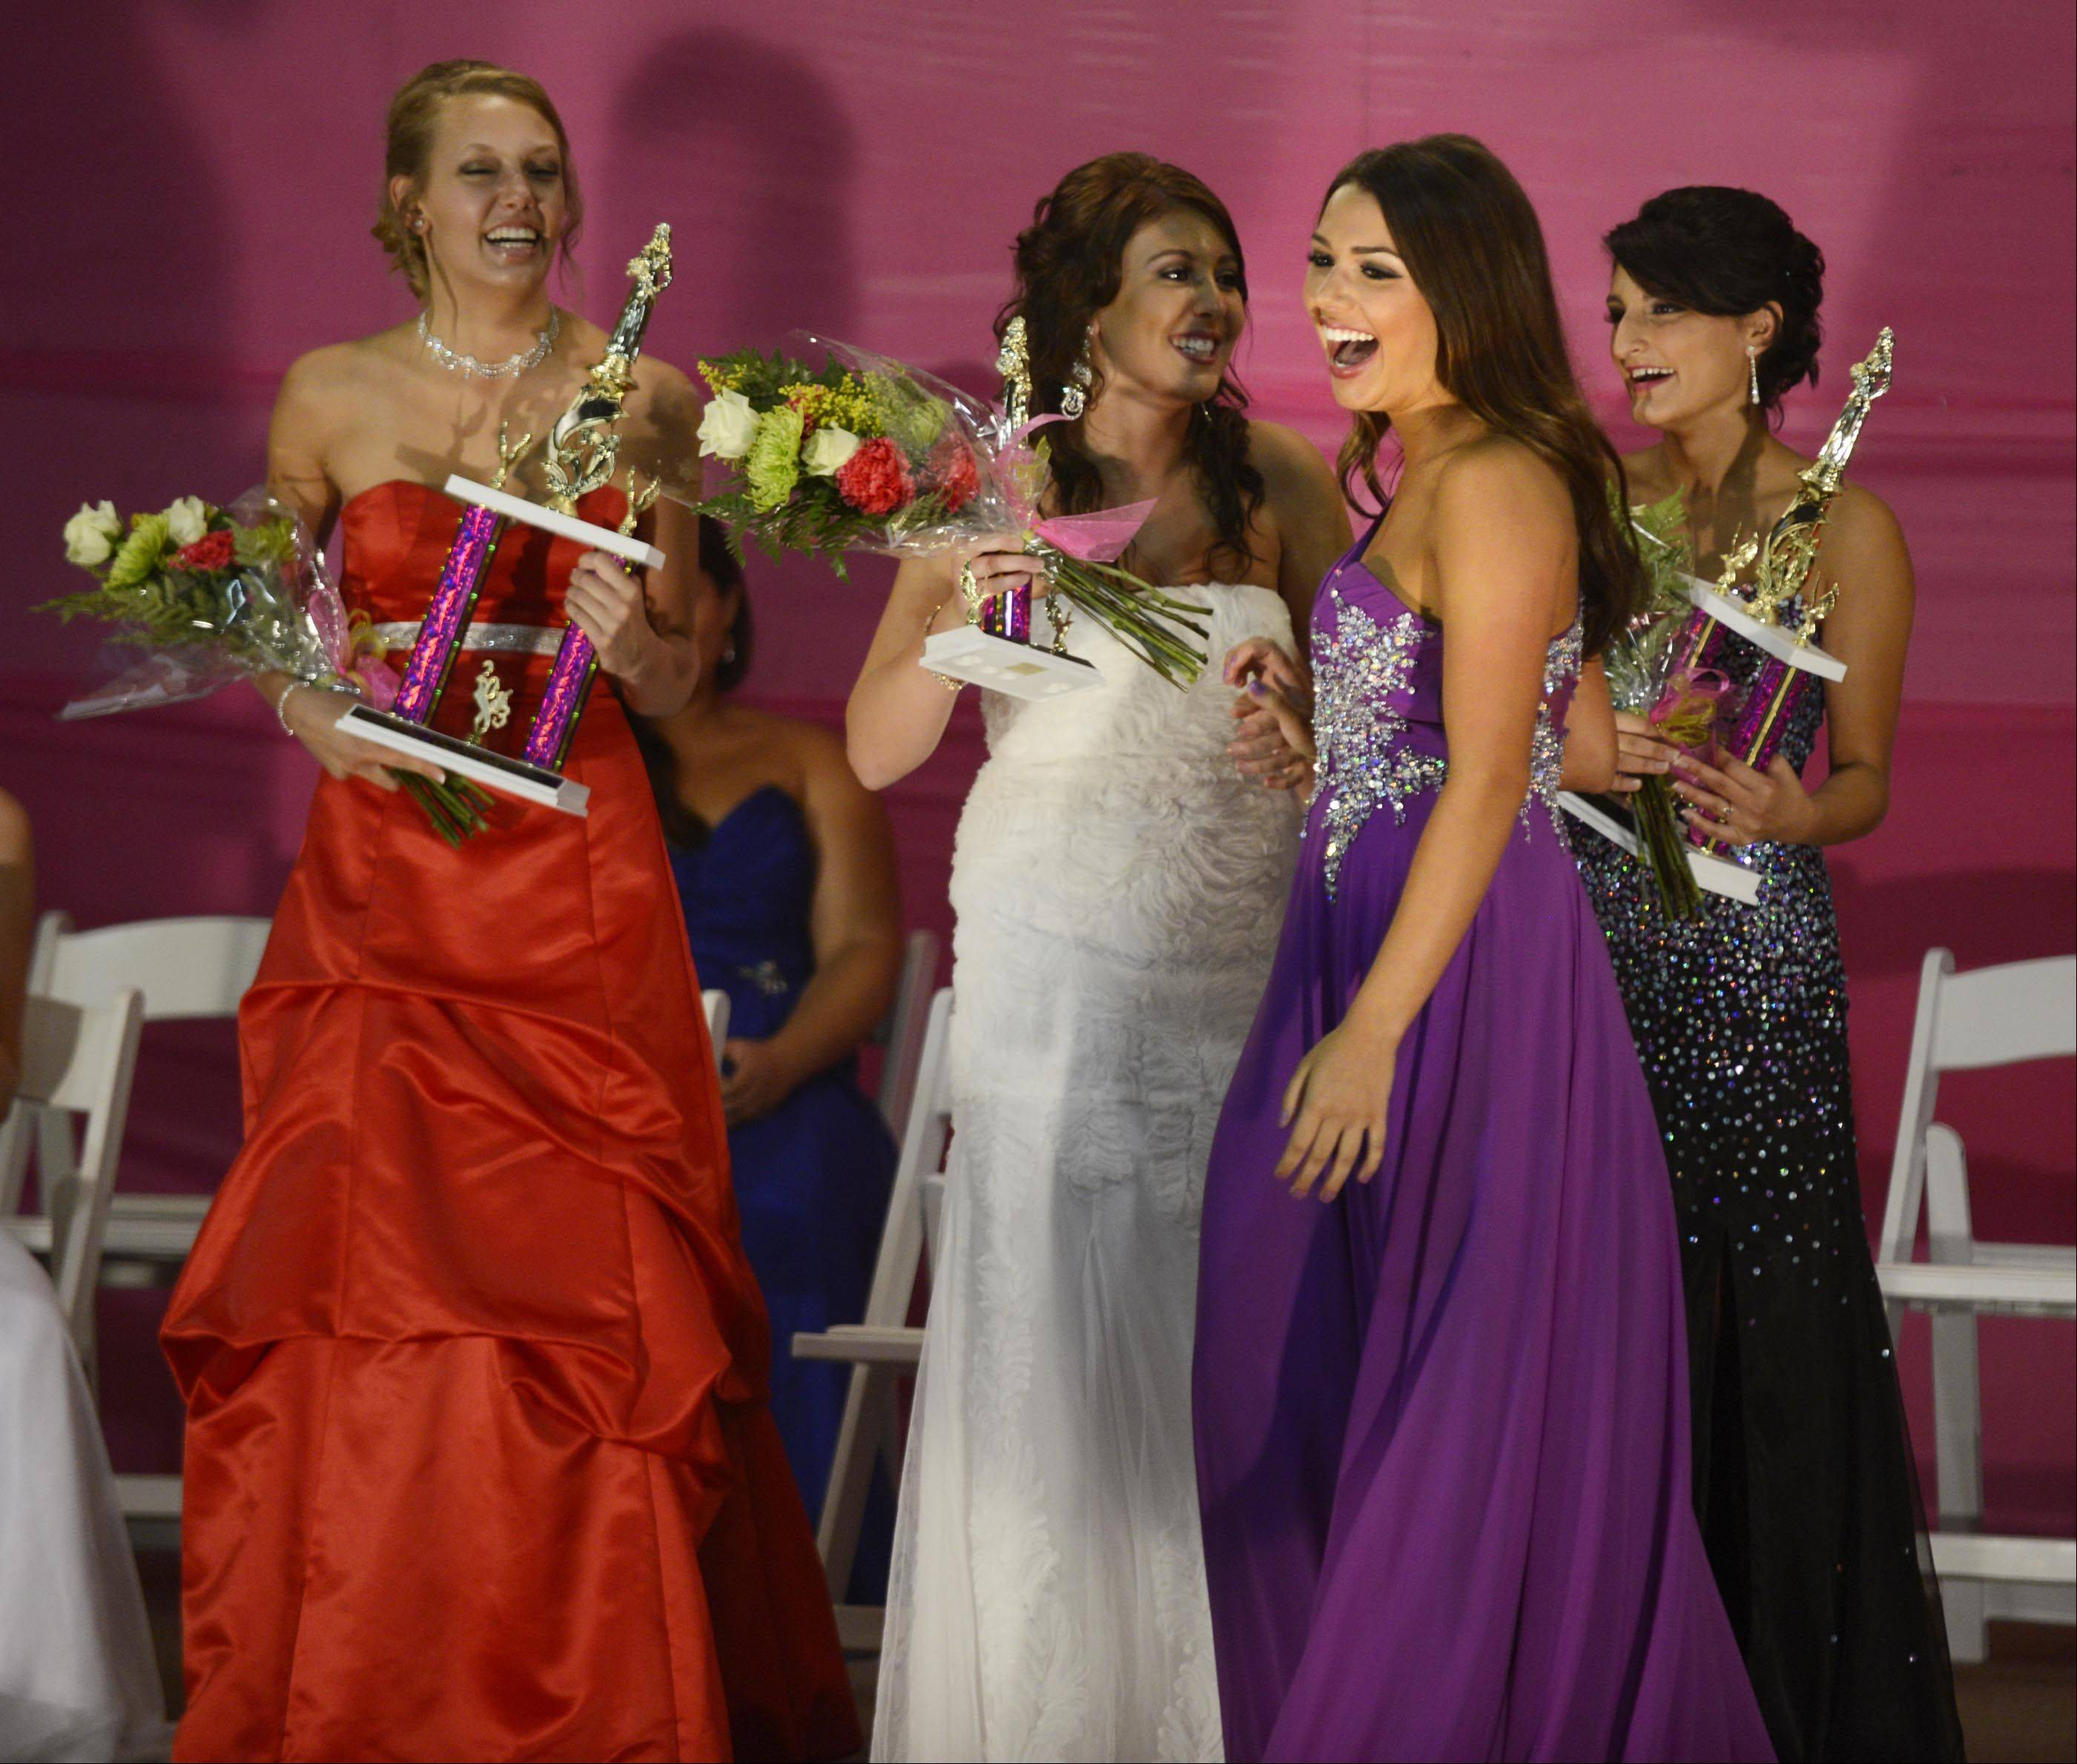 Savannah Kleiner, 18, of Lake in the Hills, reacts as she wins the crown of McHenry County Queen 2013 Wednesday night in Woodstock. Behind her are first runner-up Jessica Thuma, 21, of Woodstock, left, third runner-up Brooke Romero, 16, of Lake in the Hills, middle, and second runner-up Arlinda Fasliu, 18, of Woodstock.